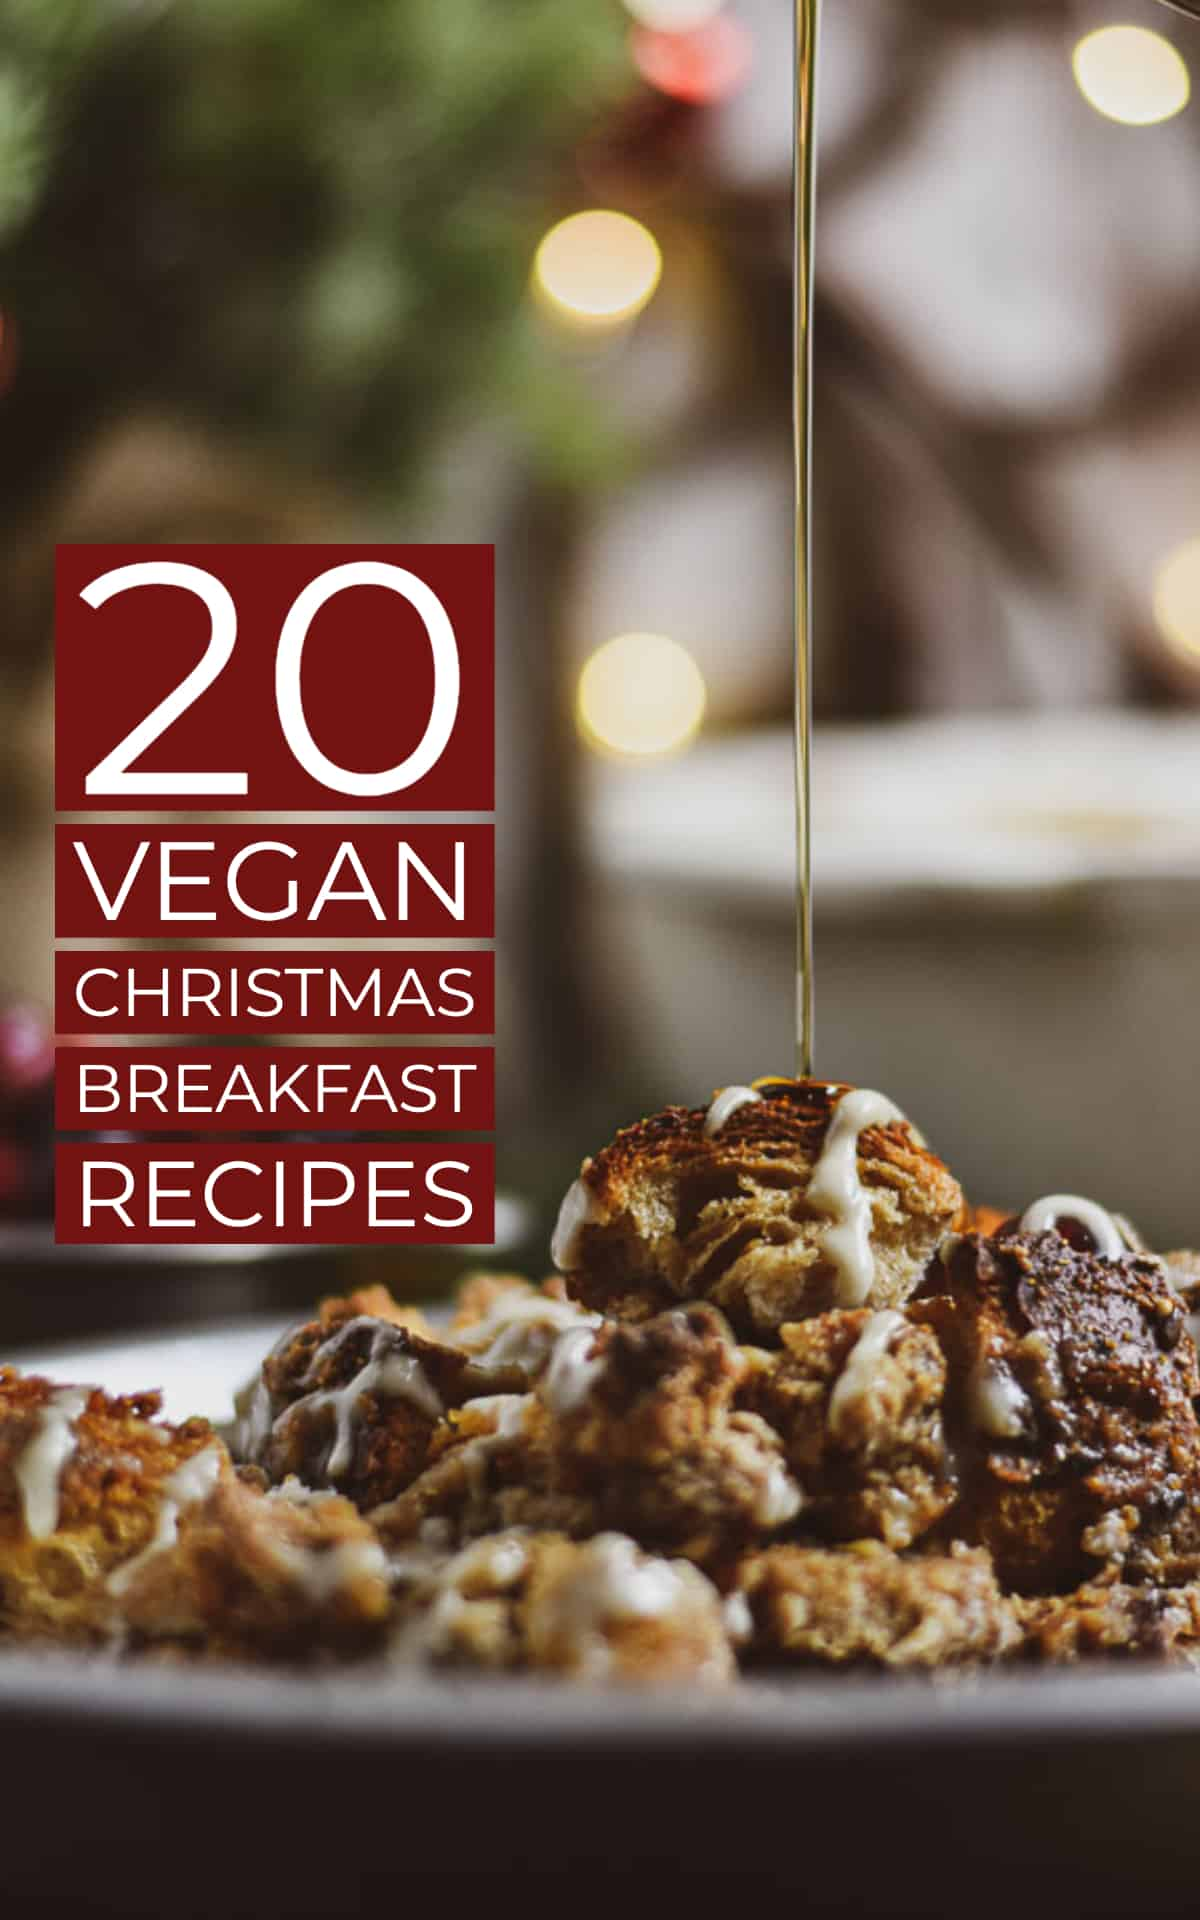 20 healthy vegan christmas recipes photo.